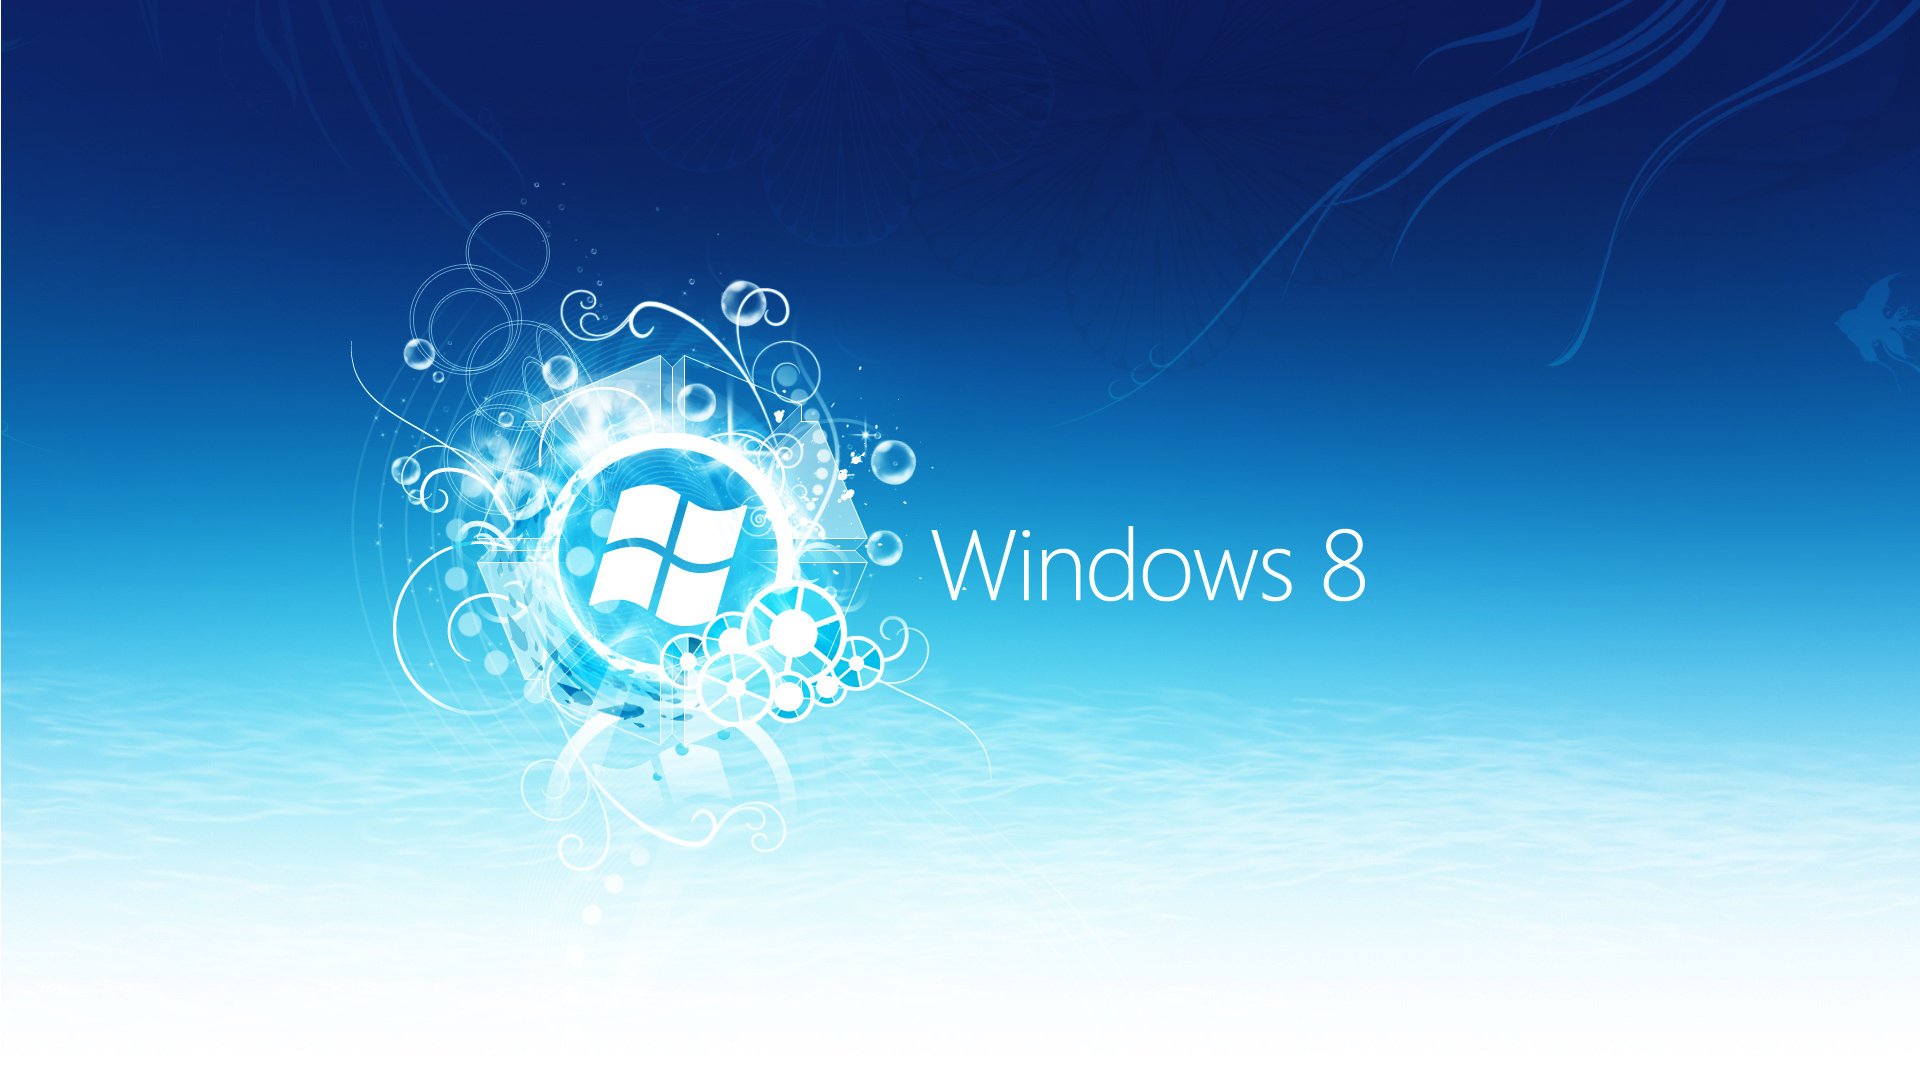 20 Widescreen HD Wallpapers For Windows 8 Desktop Background 1920x1080